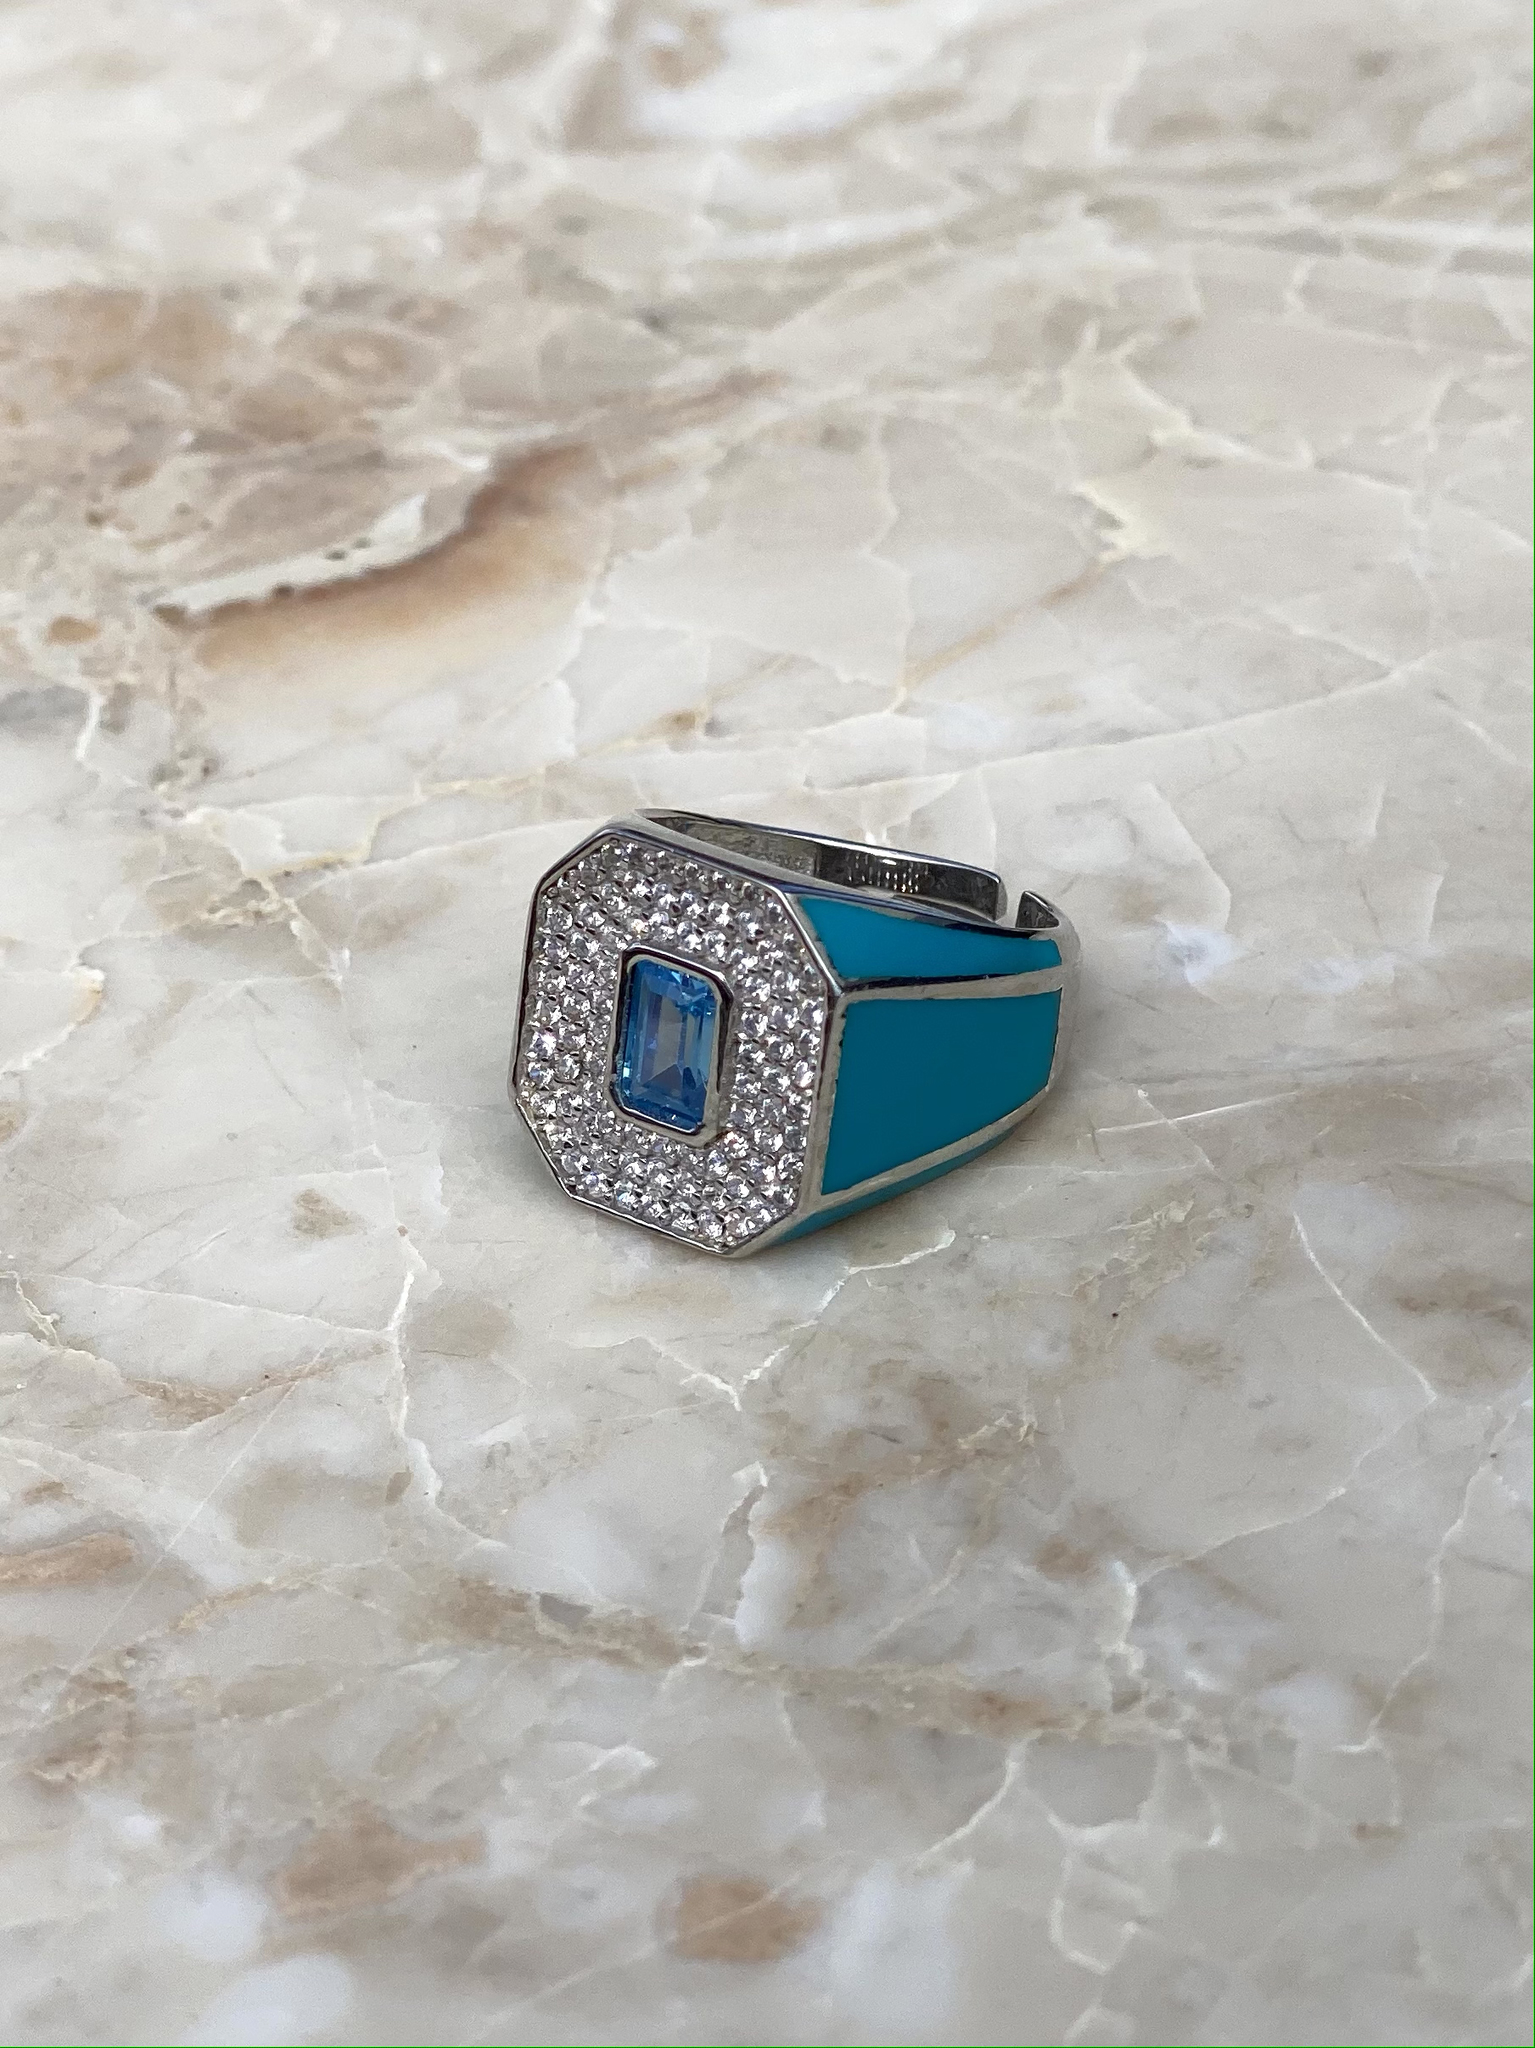 Signet ring in silwer with blue enamel and zircons